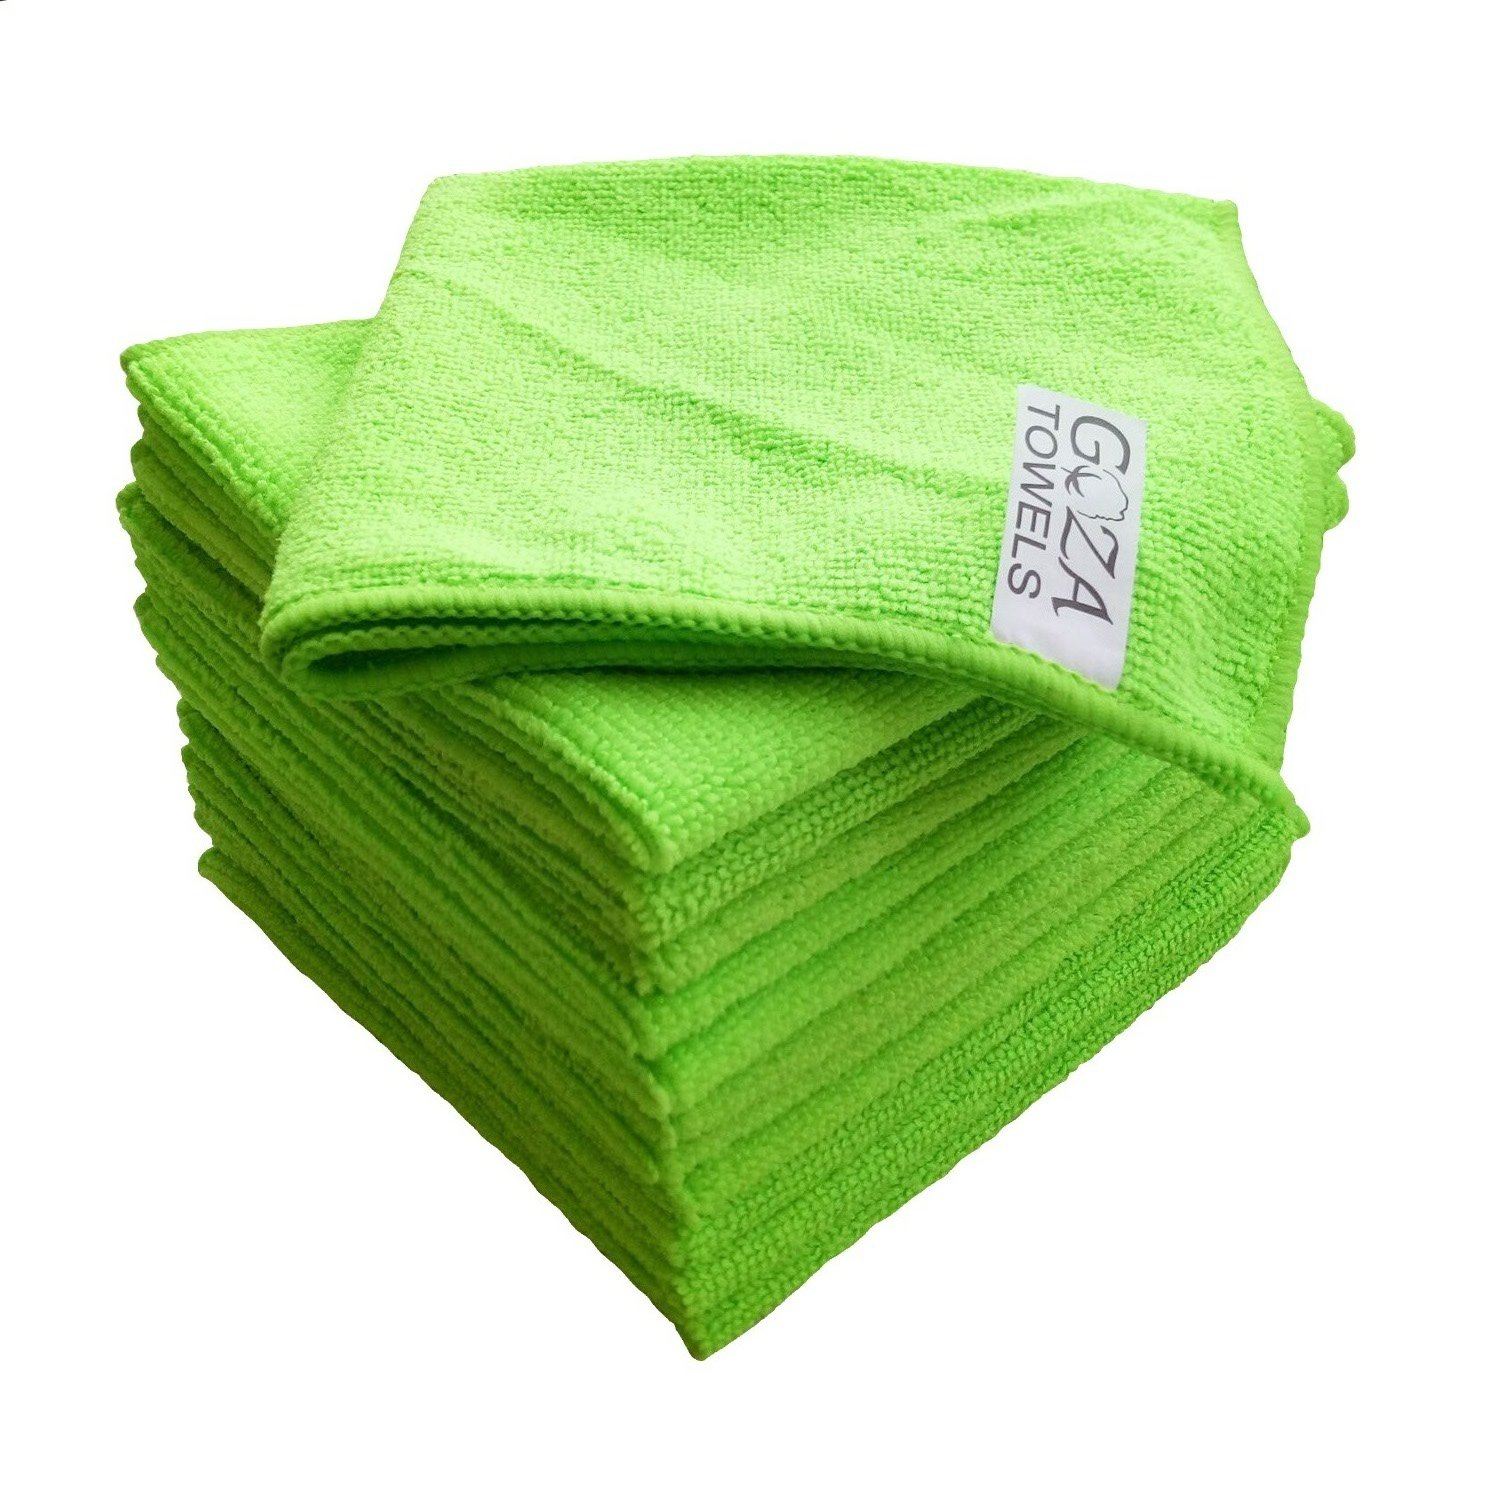 Goza Towels Microfiber Towel Cleaning Cloths Professional Grade All-Purpose 16''x16'' (12 Pack, Green)